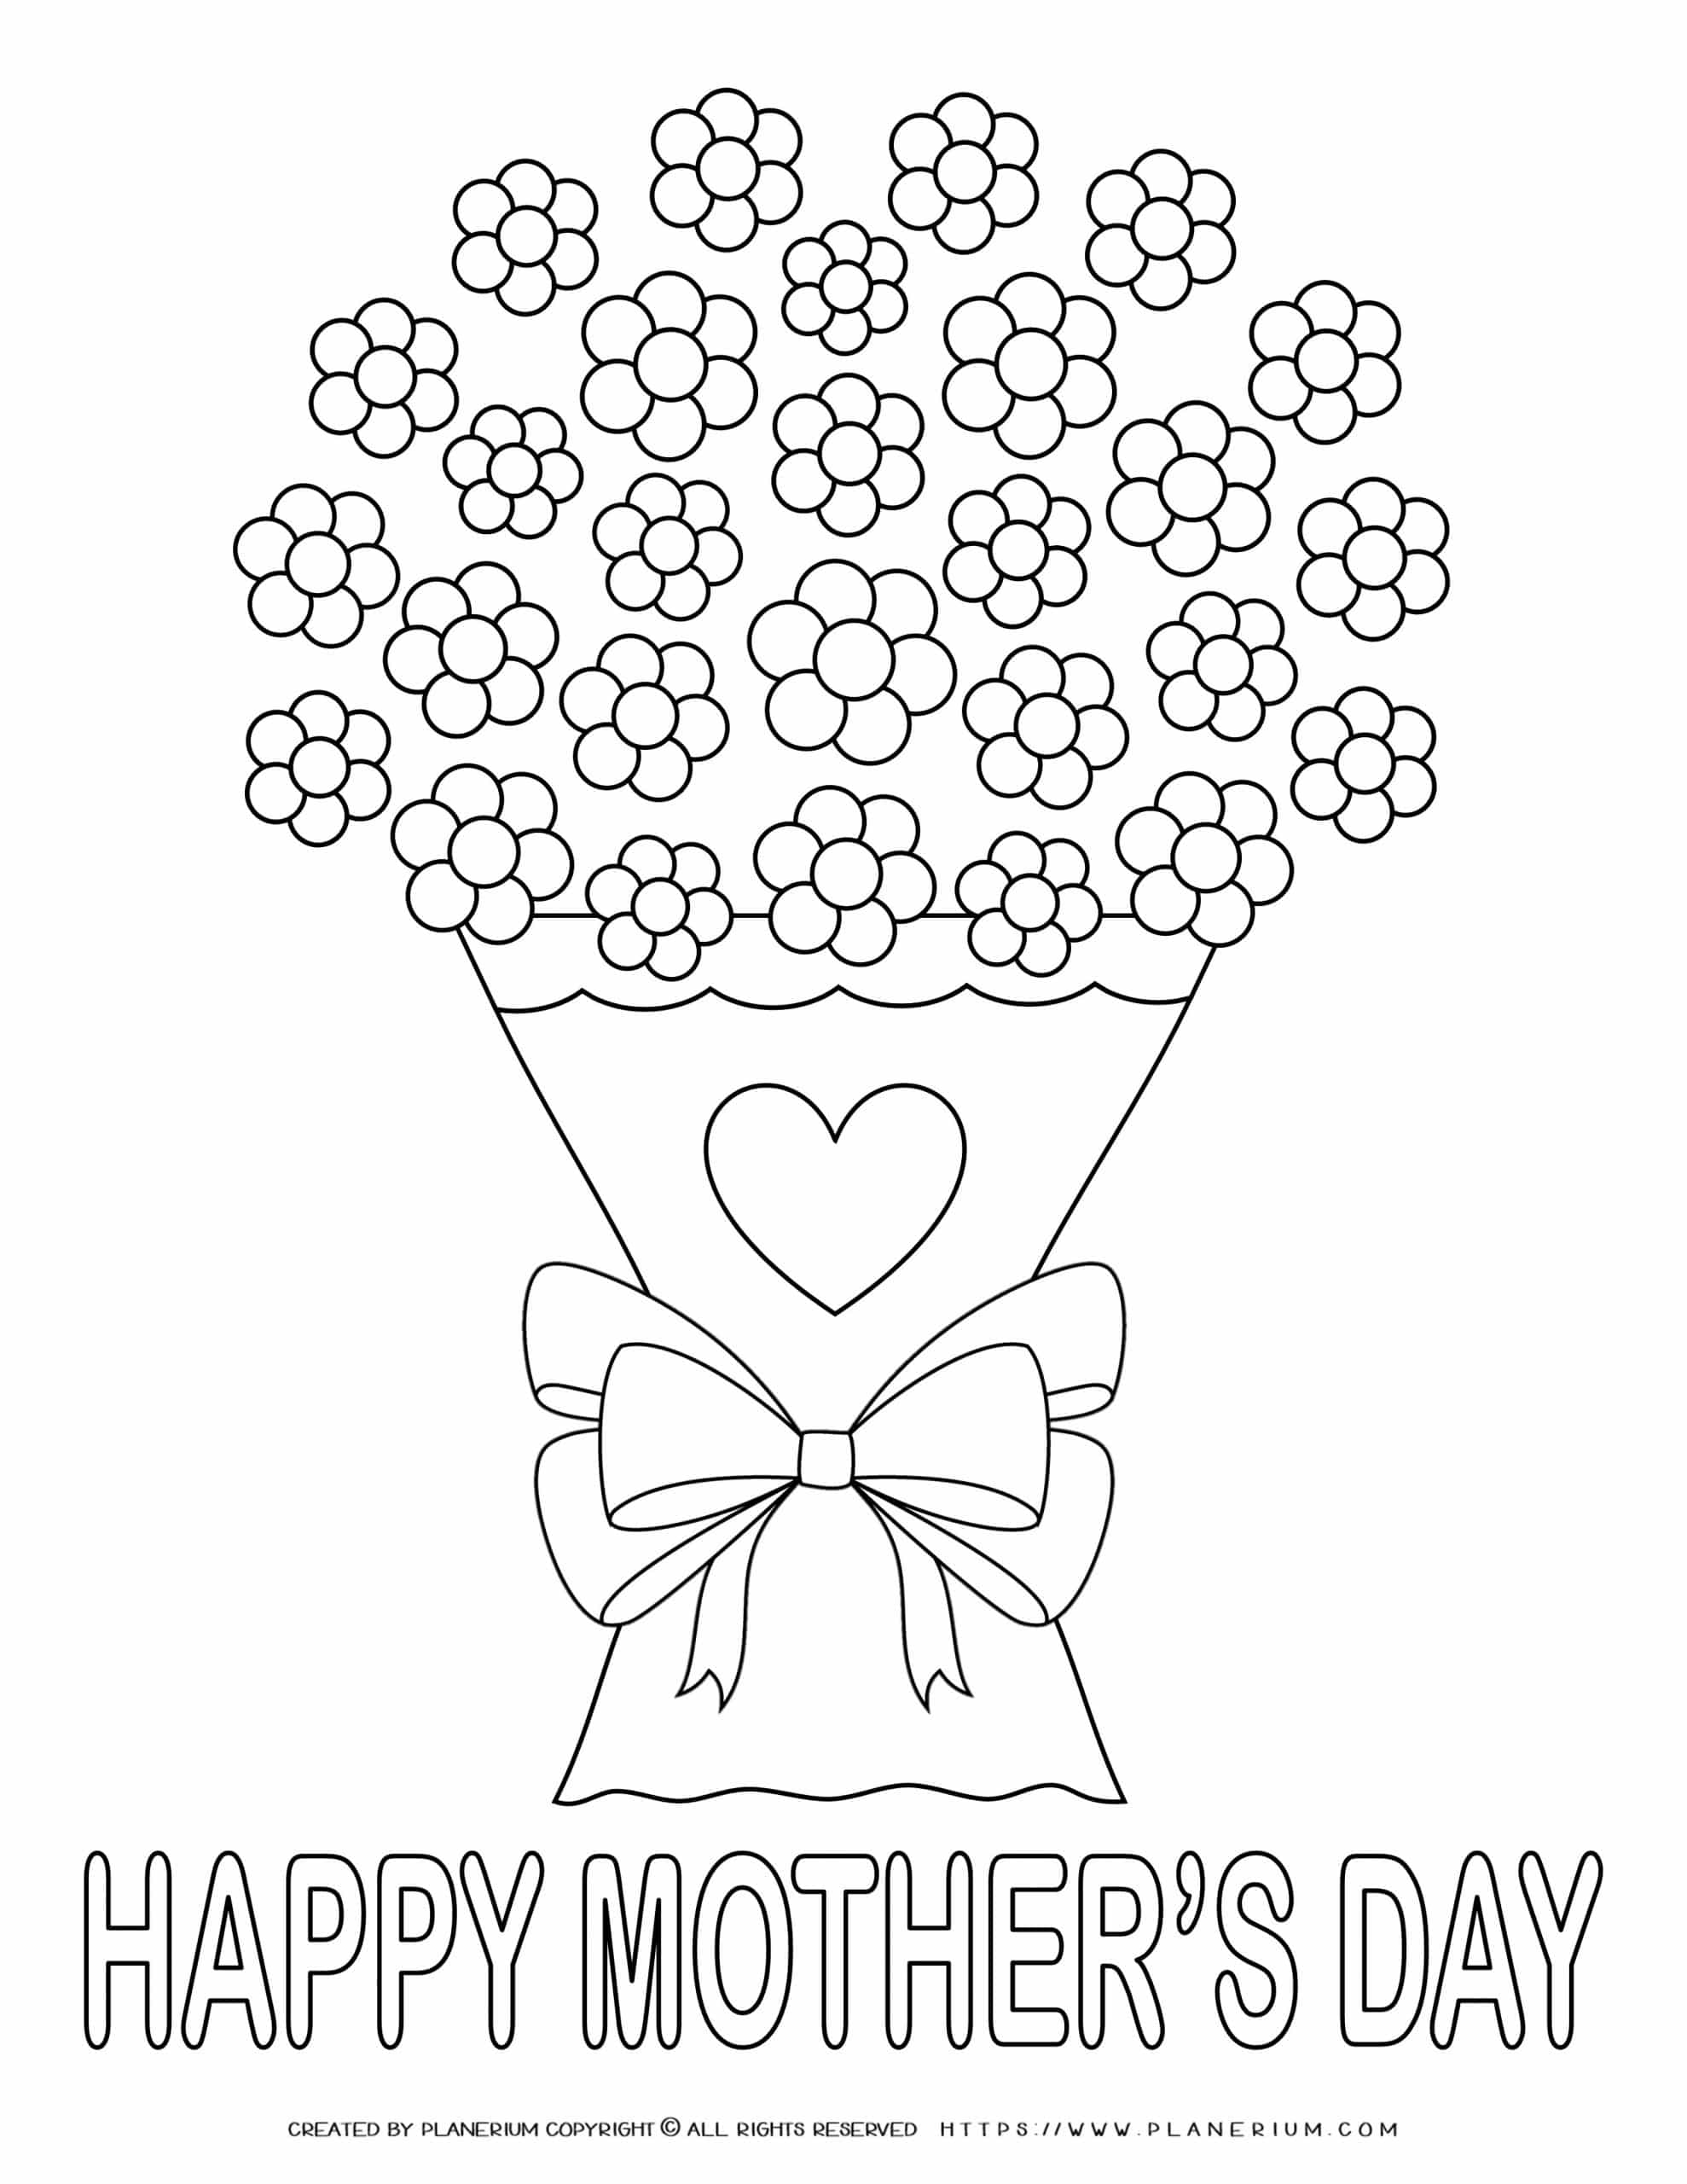 Mother's Day - Coloring Page - Flowers for Mom